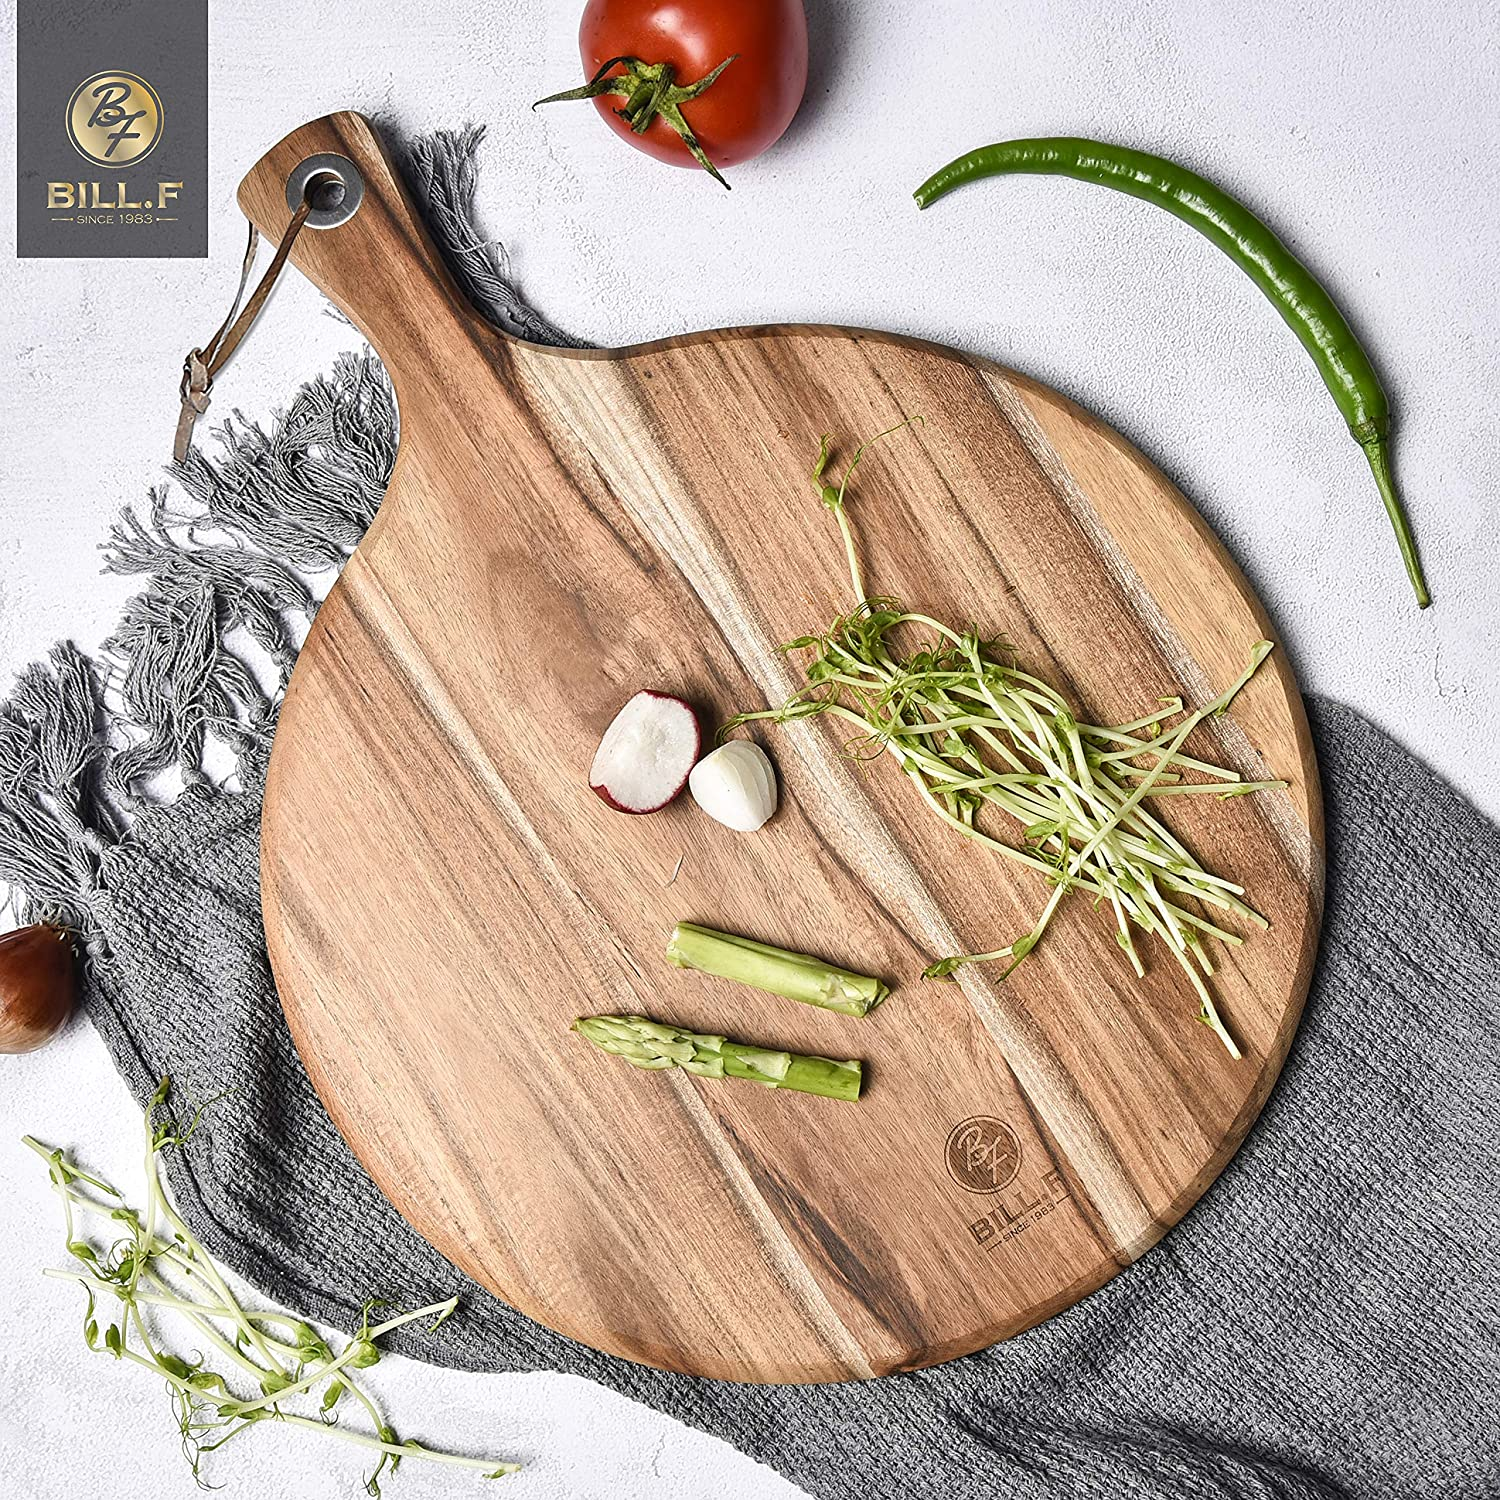 round wooden pizza peel or bread board